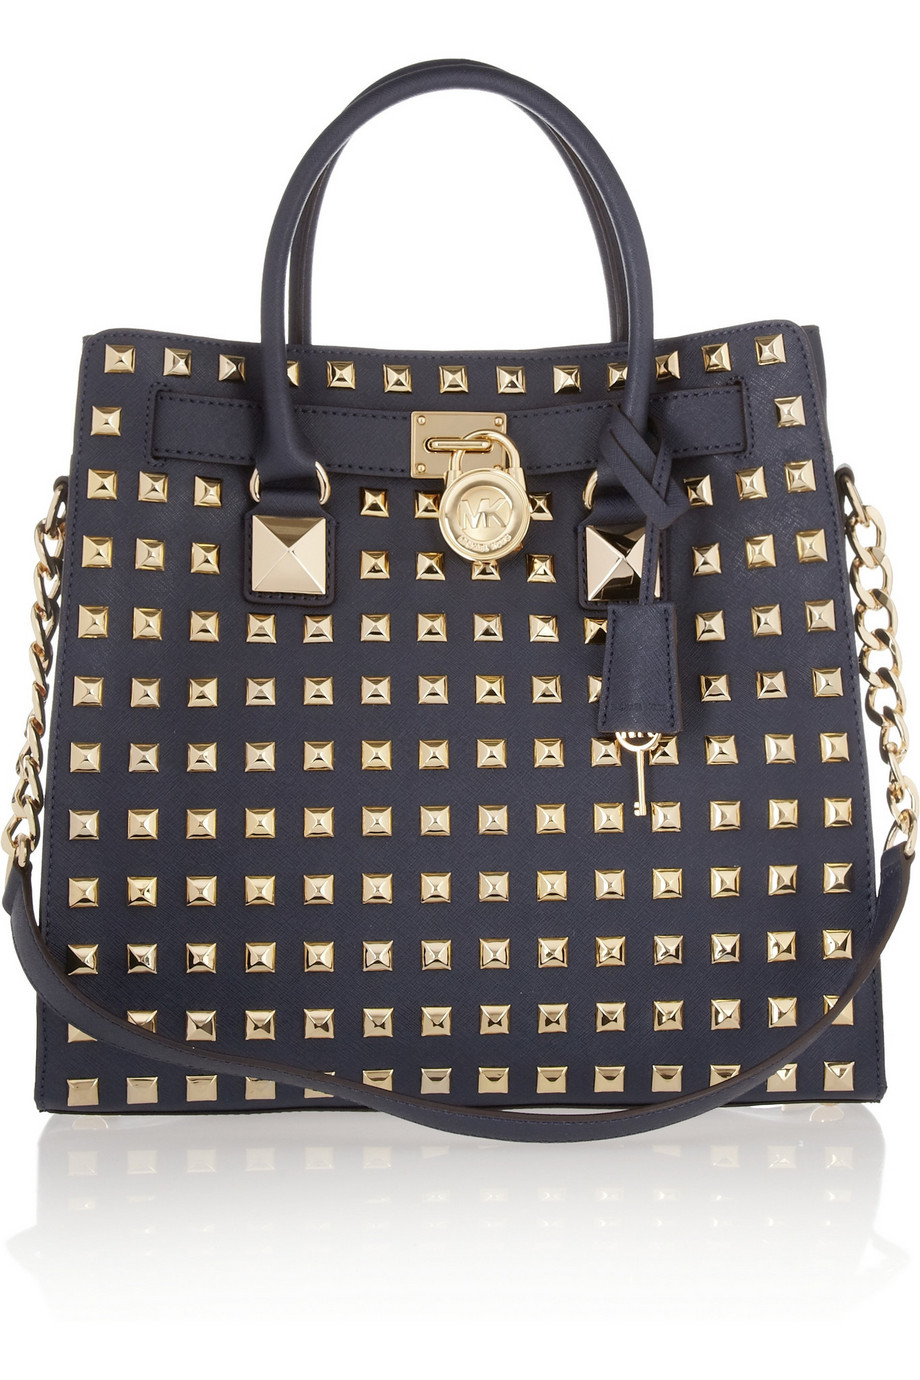 Michael By Michael Kors Hamilton Black Studded Tote Shoulder Bag 97